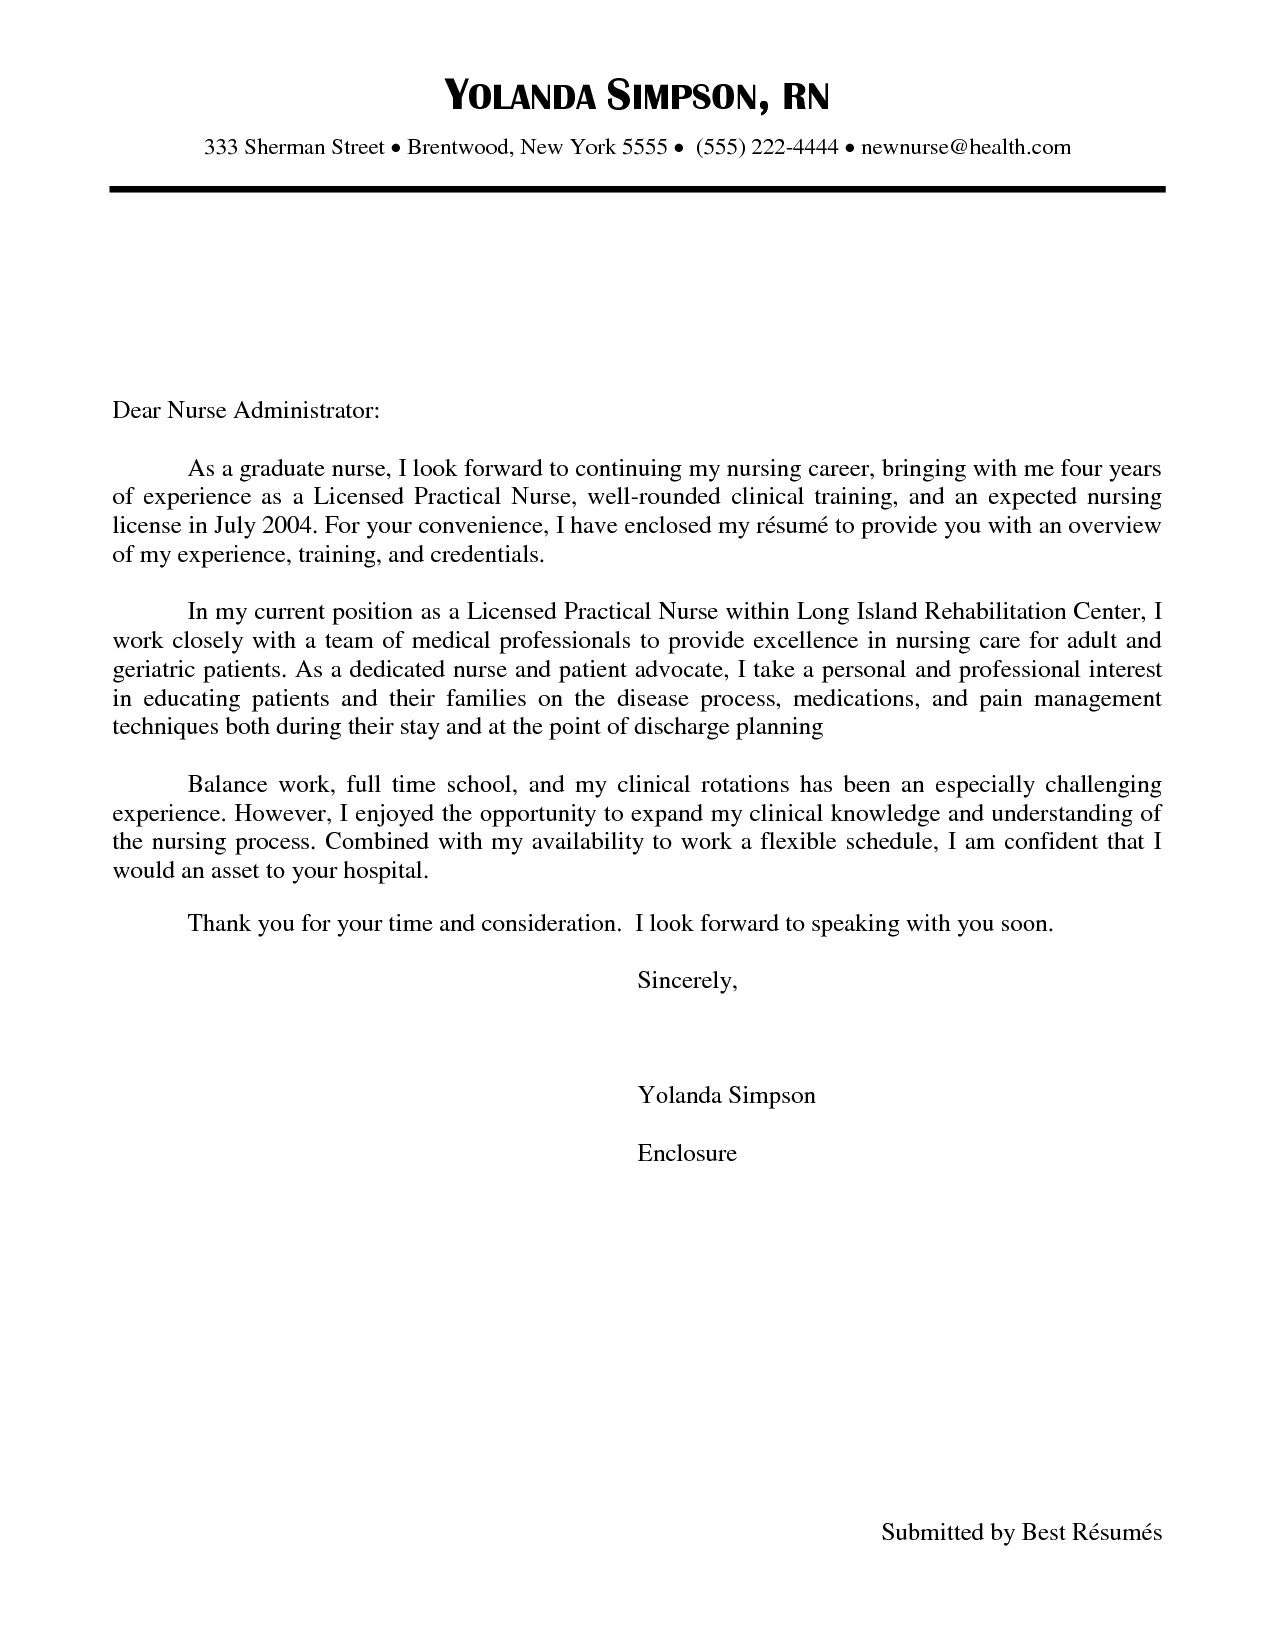 New Grad Nurse Cover Letter Example | Cover Letter Functional Style 2  Sample Nurse Cover Letter